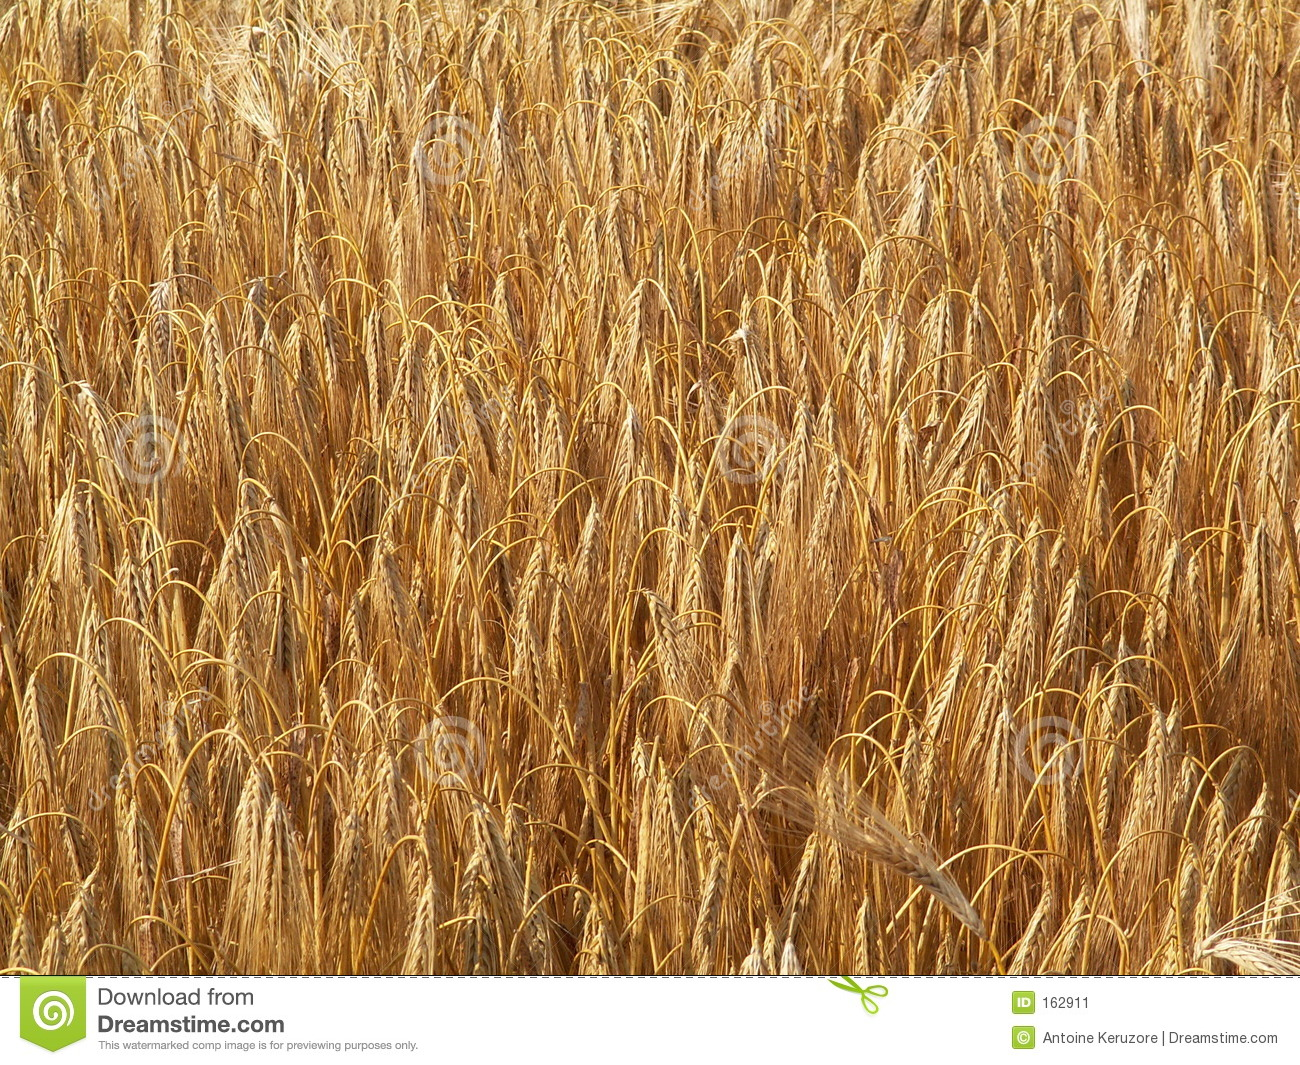 Bearbed wheat